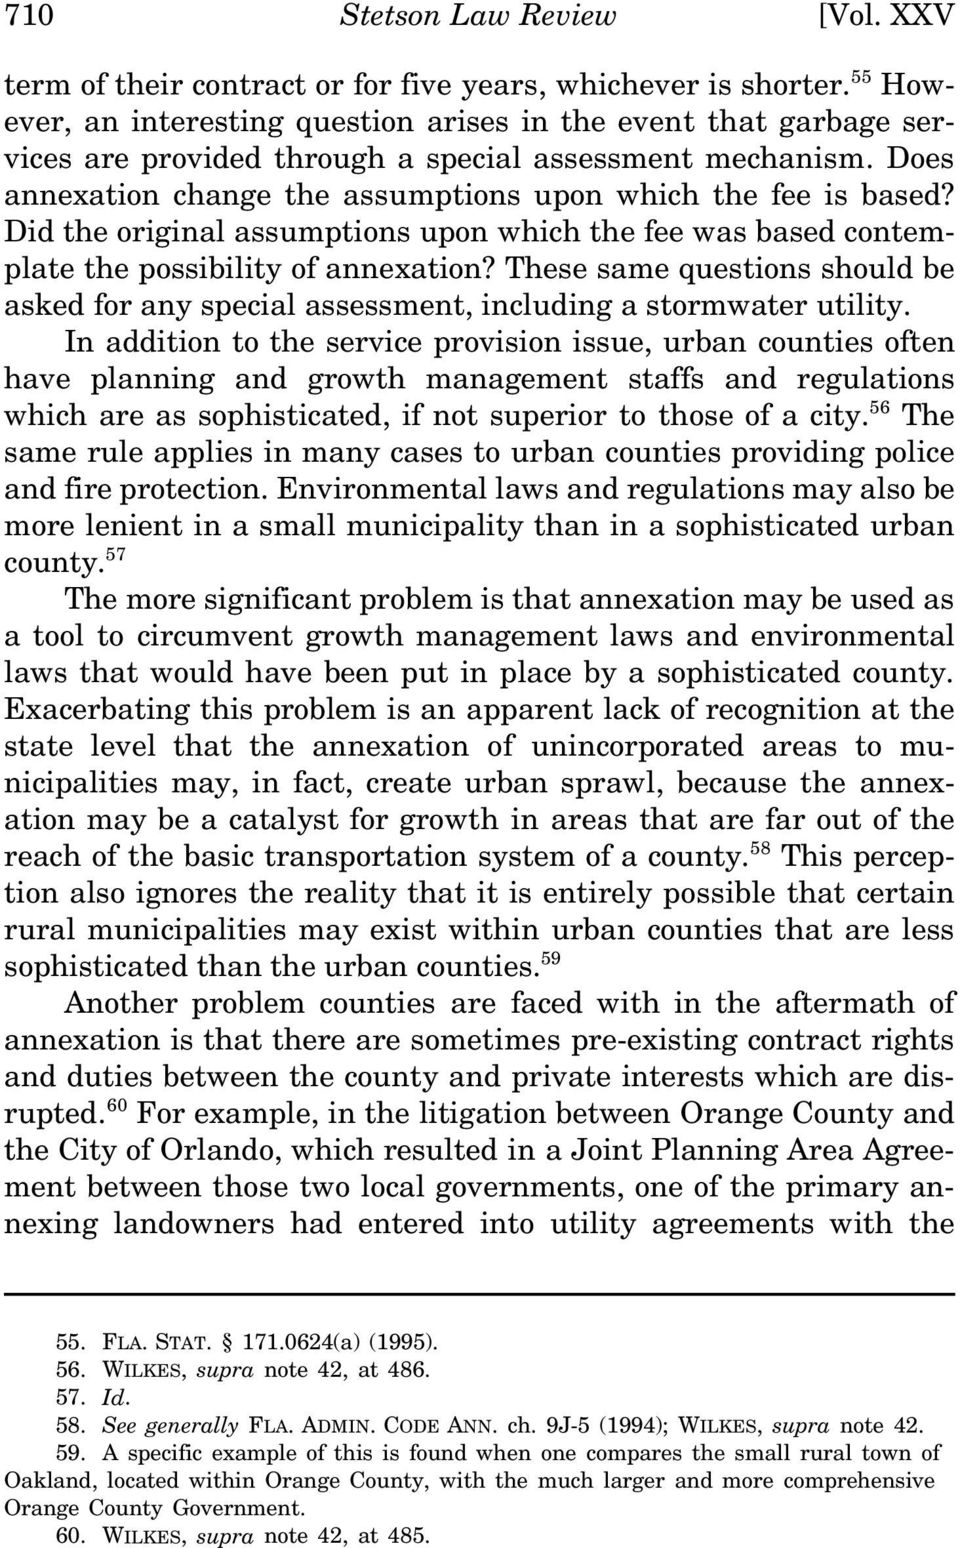 Did the original assumptions upon which the fee was based contemplate the possibility of annexation? These same questions should be asked for any special assessment, including a stormwater utility.